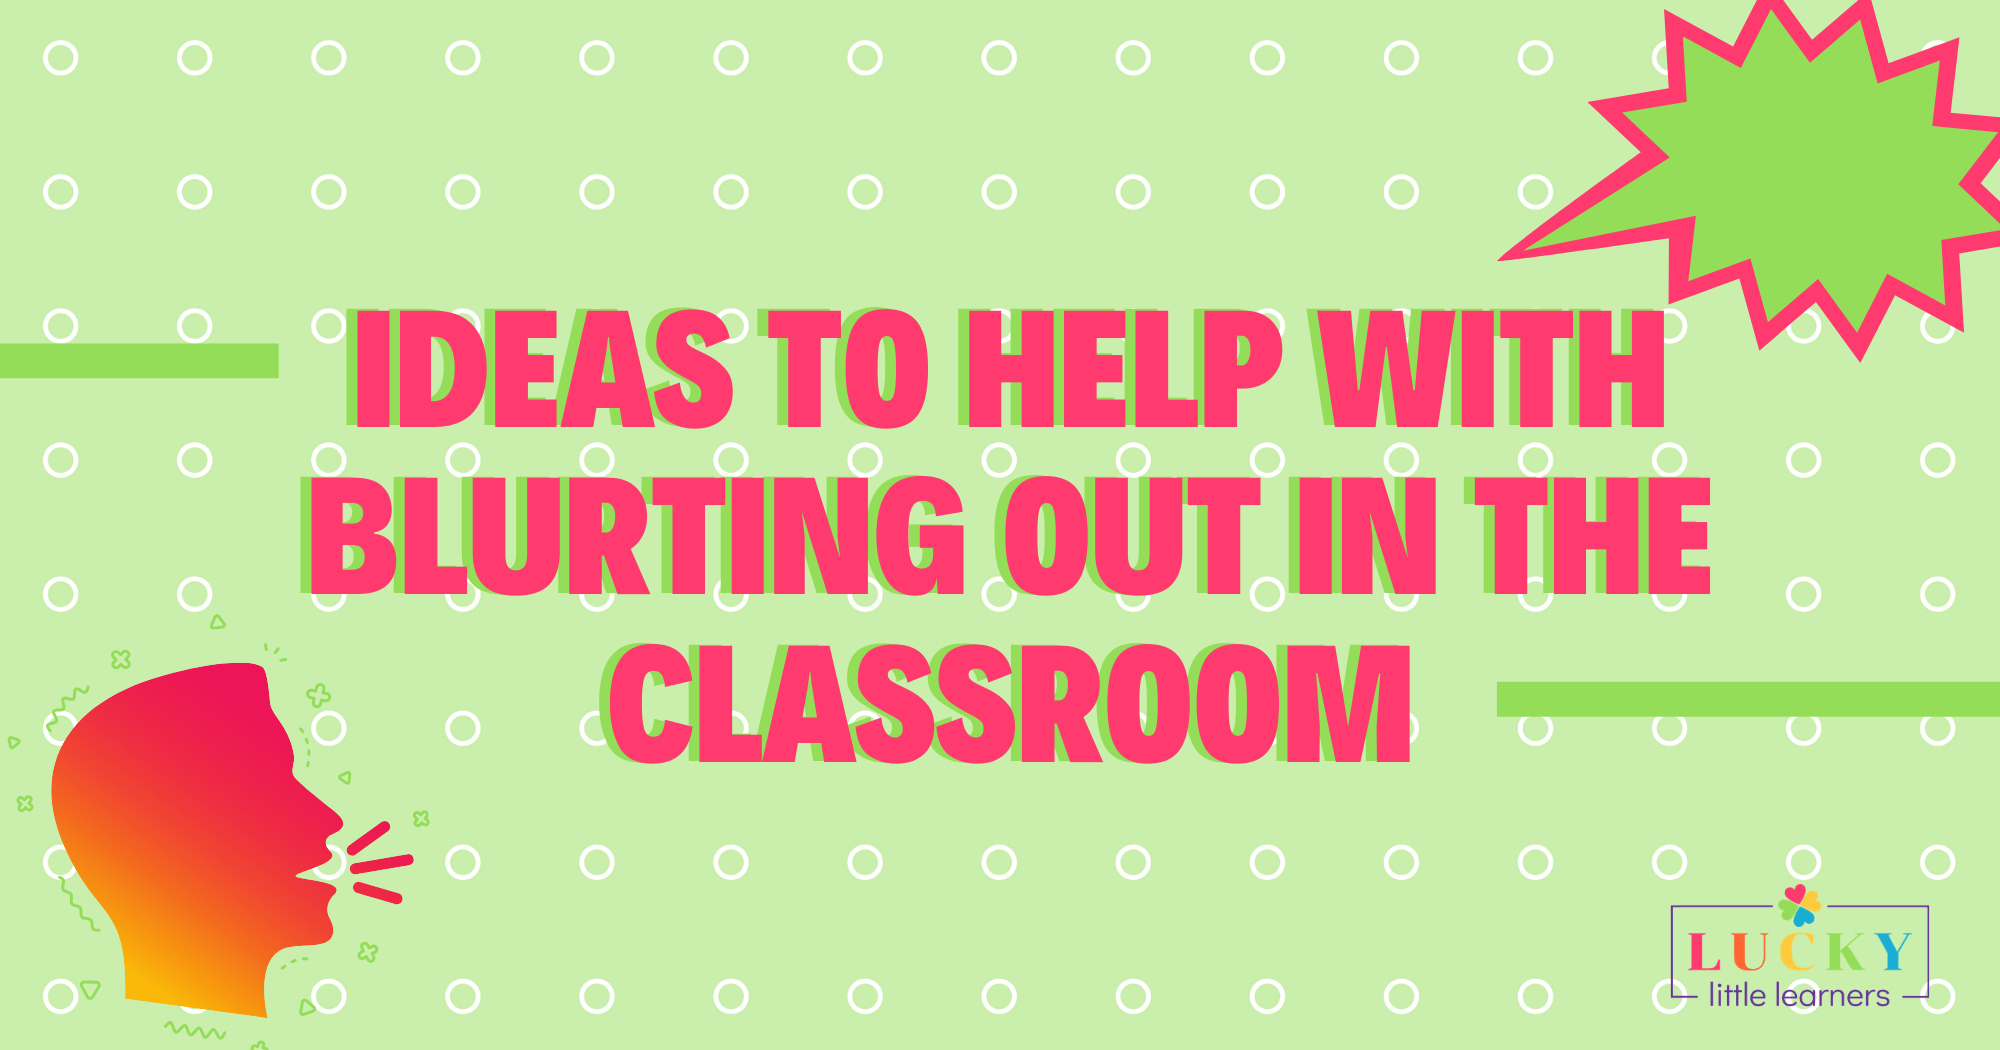 Ideas to Help with Blurting out in the Classroom